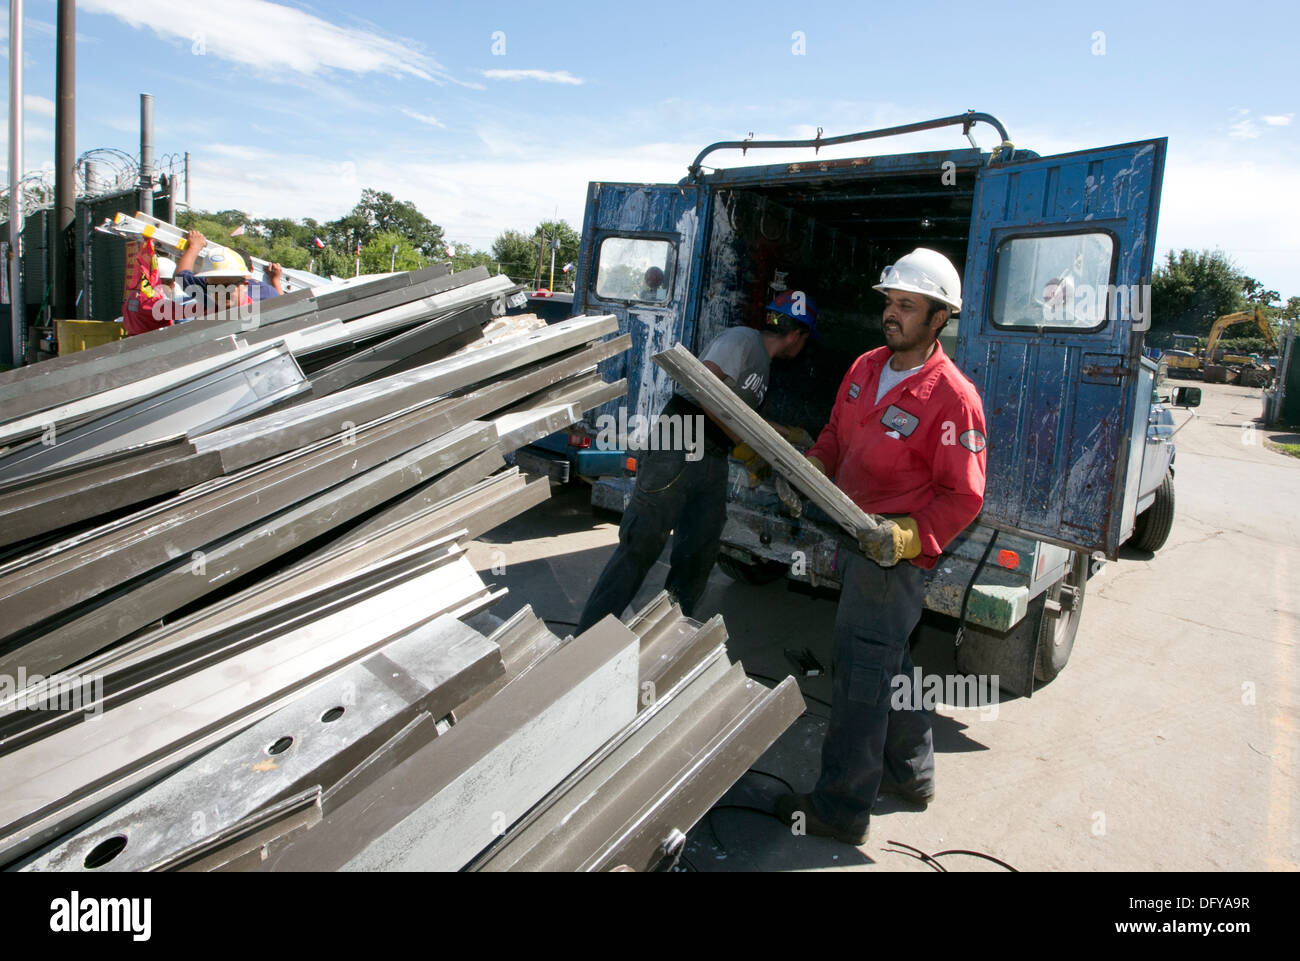 Hispanic male workers arrange metal beams for recycling at scrap metal company in Texas - Stock Image